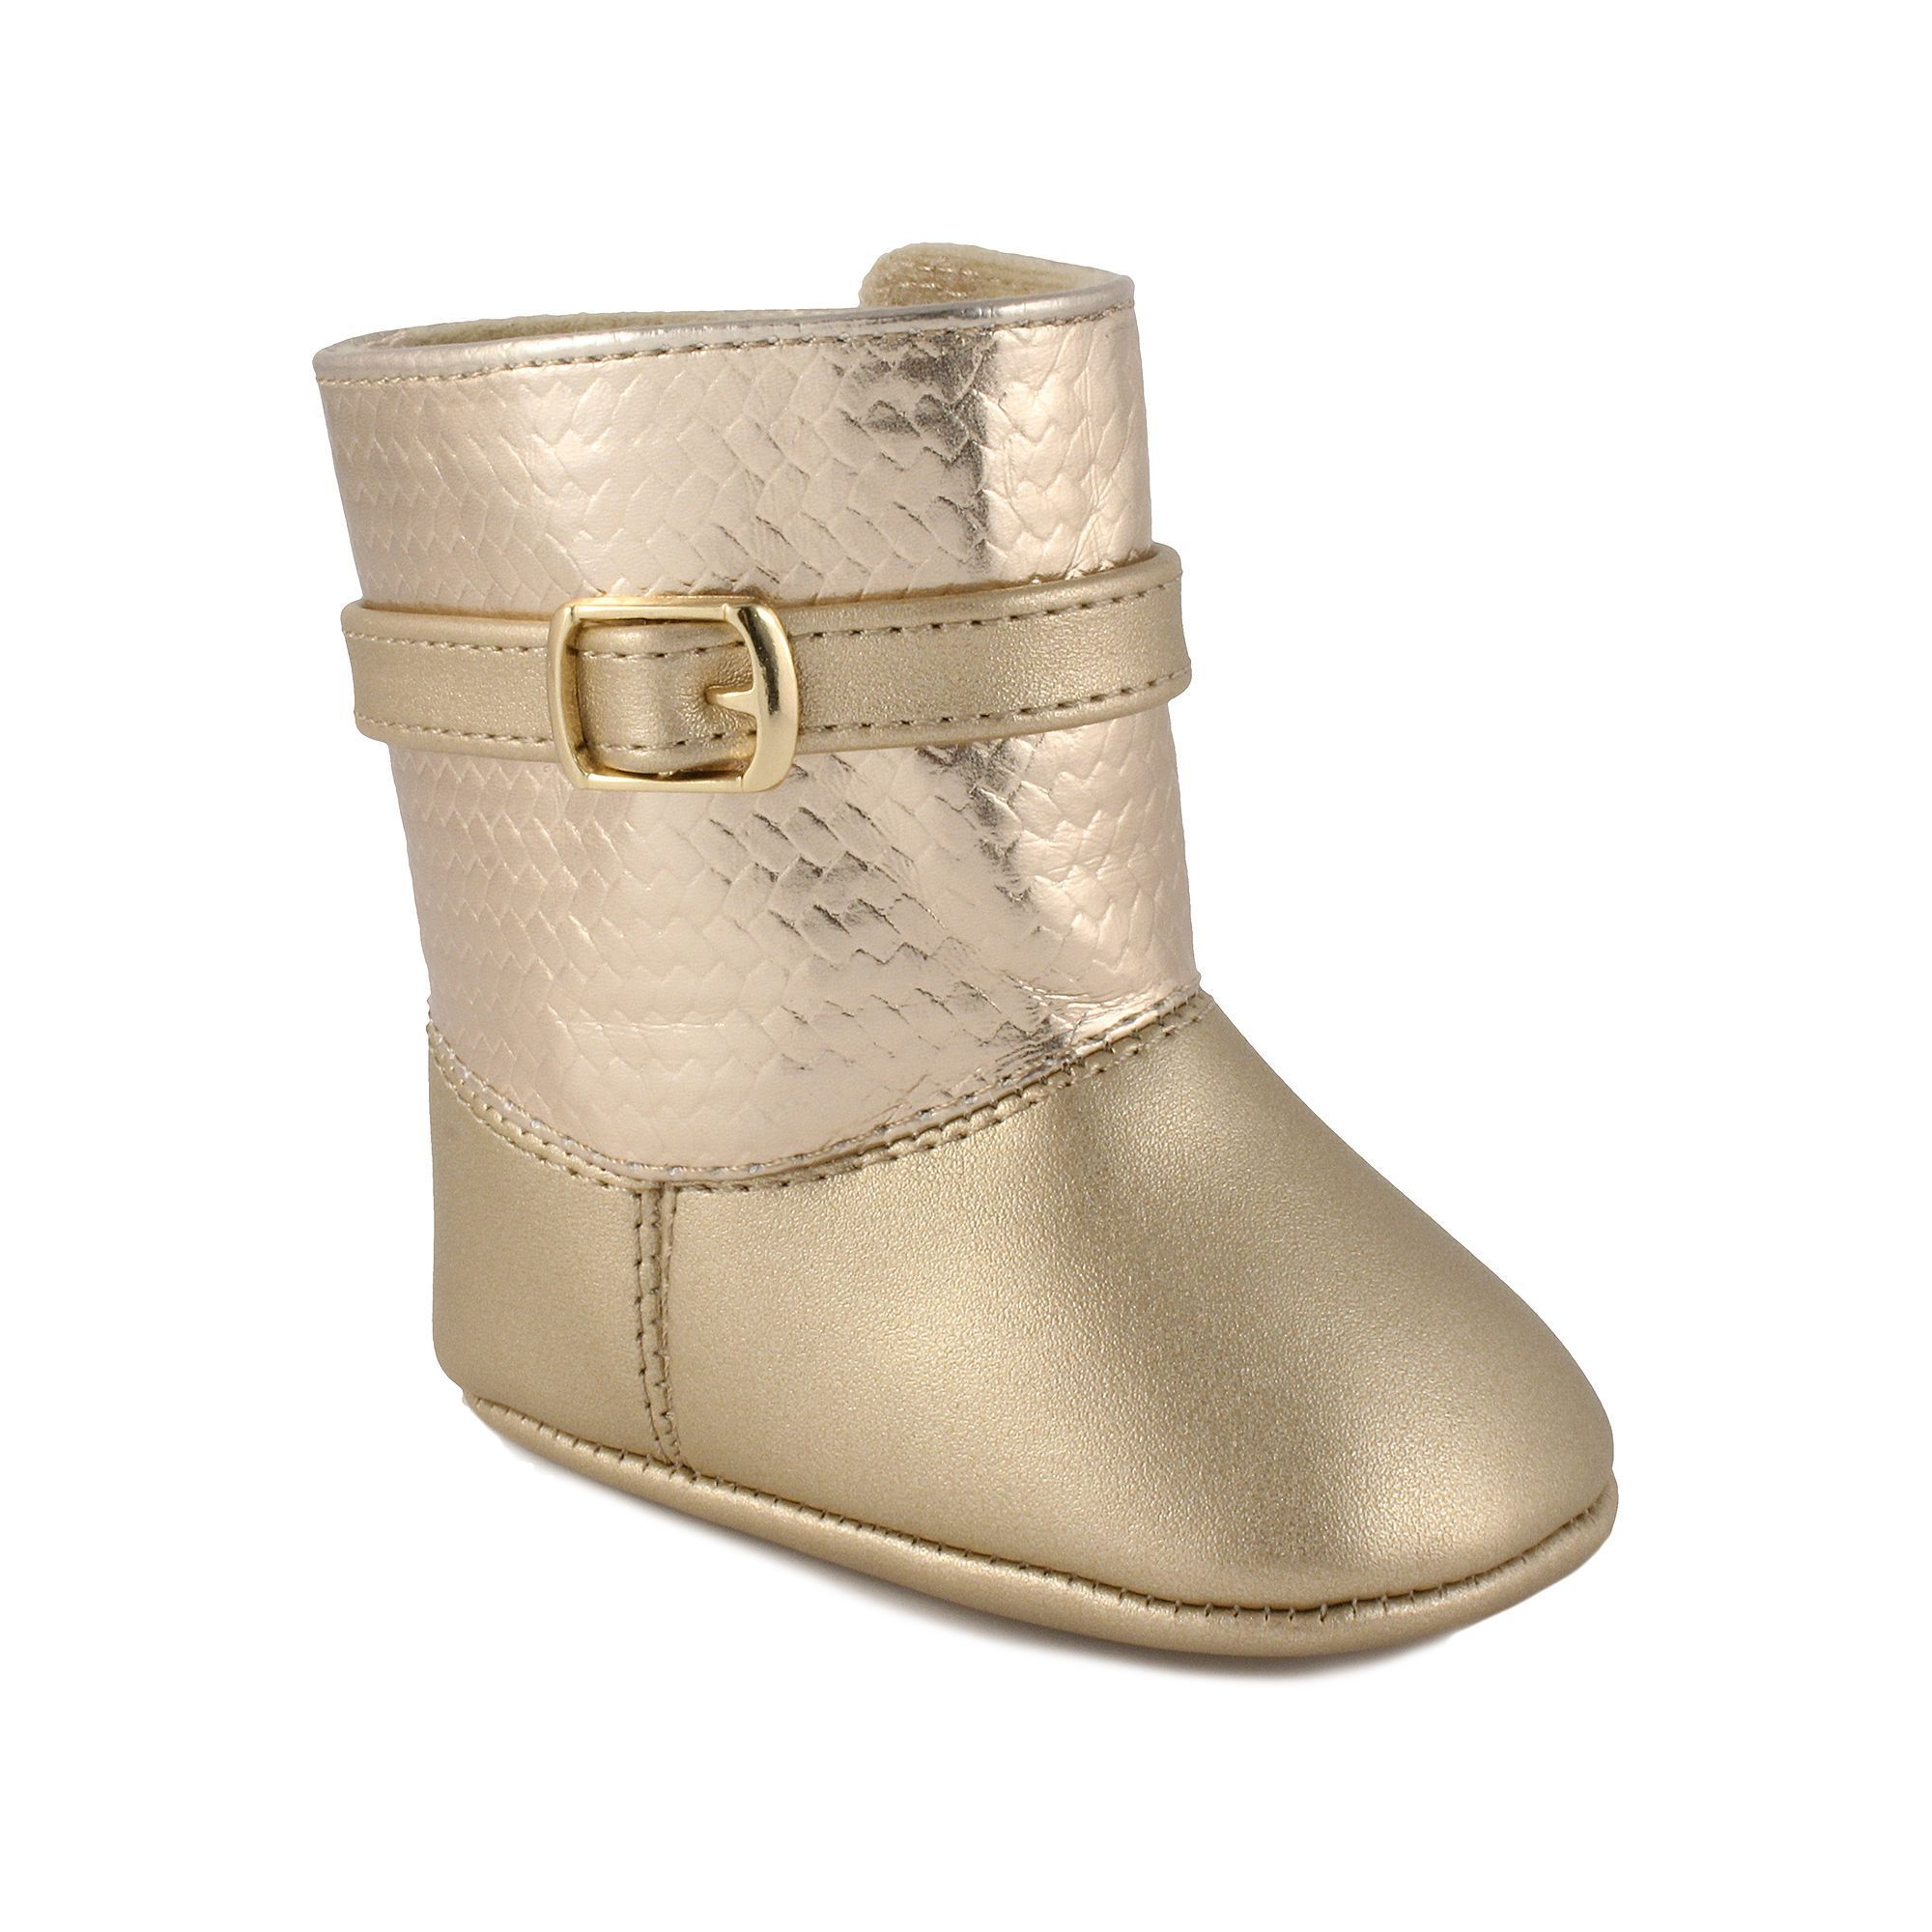 Baby Girl Wee Kids Metallic Boot Crib Shoes Size 2 Med Beige